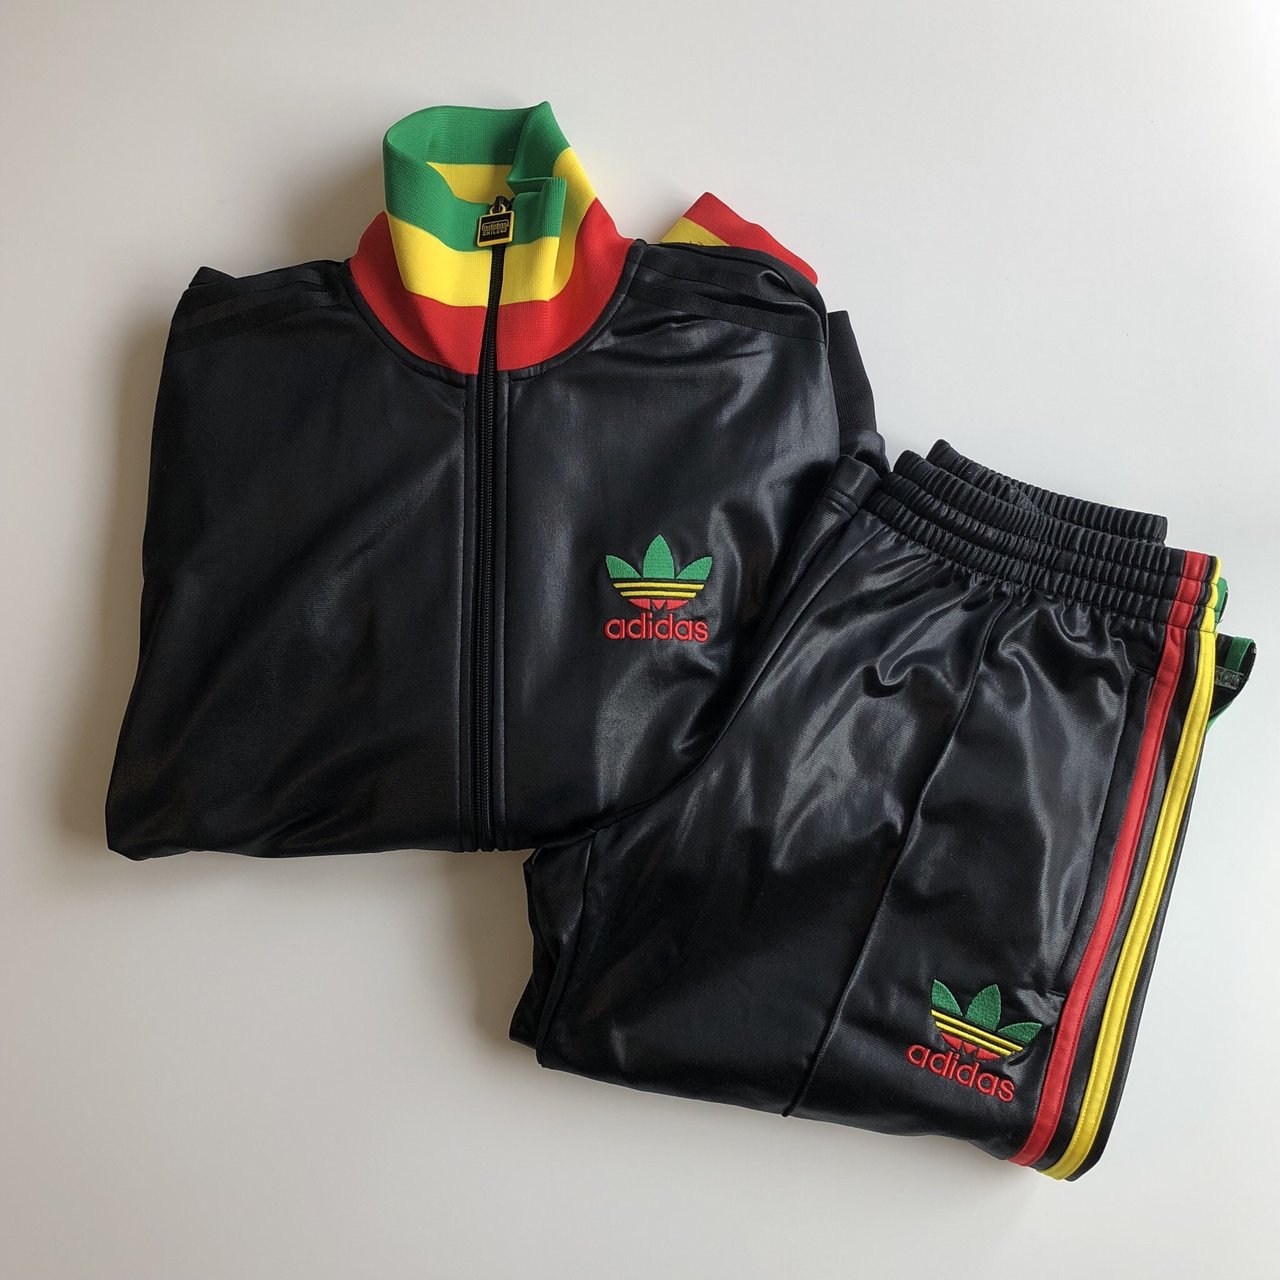 e2258a05c Unisex Unisex Chile Vintage Depop Adidas Matching Zip Rasta 62 Trackpants  wrvwREAq